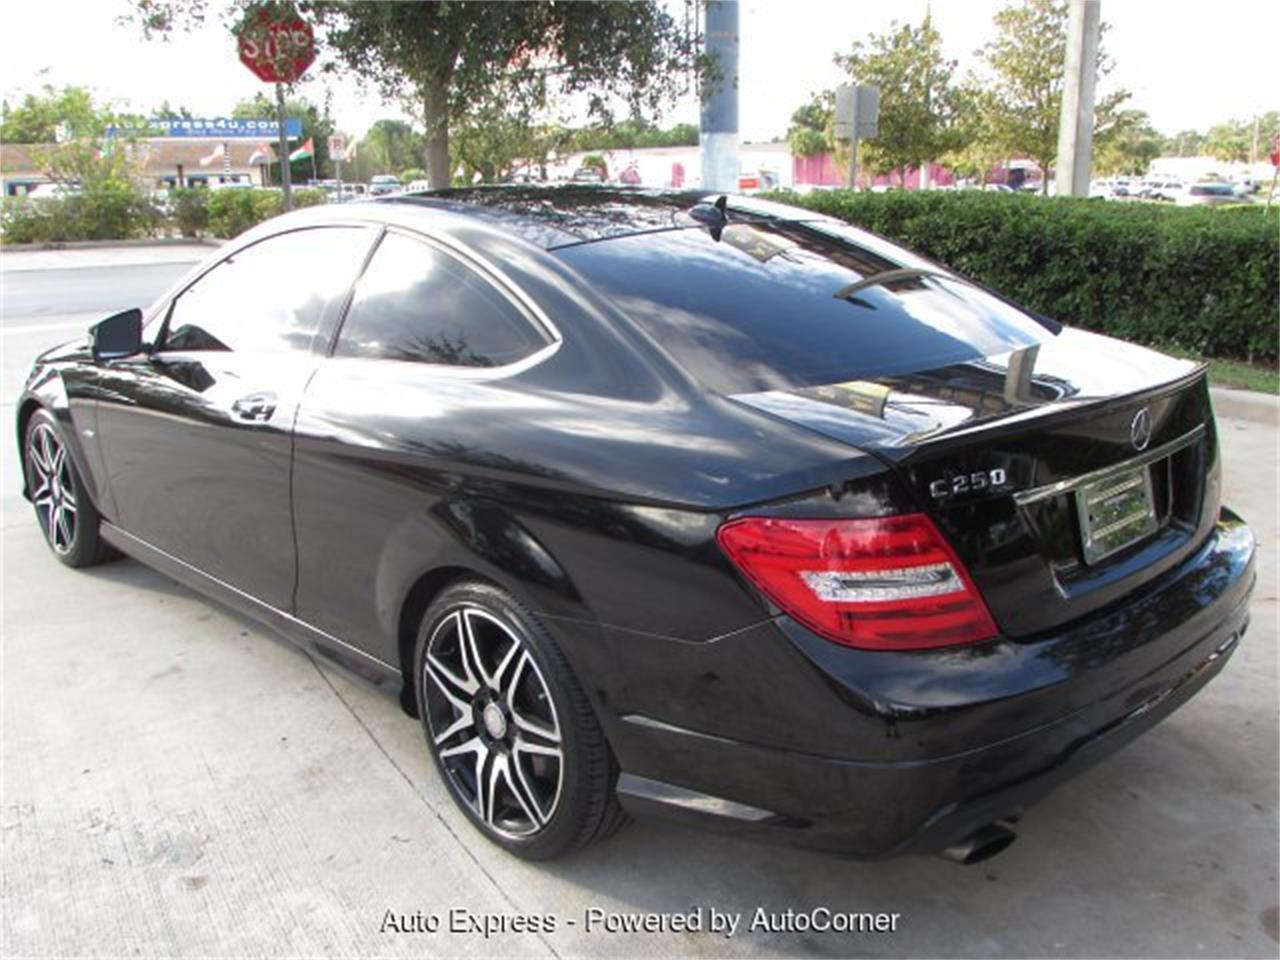 2013 Mercedes-Benz C250 for sale in Orlando, FL – photo 6